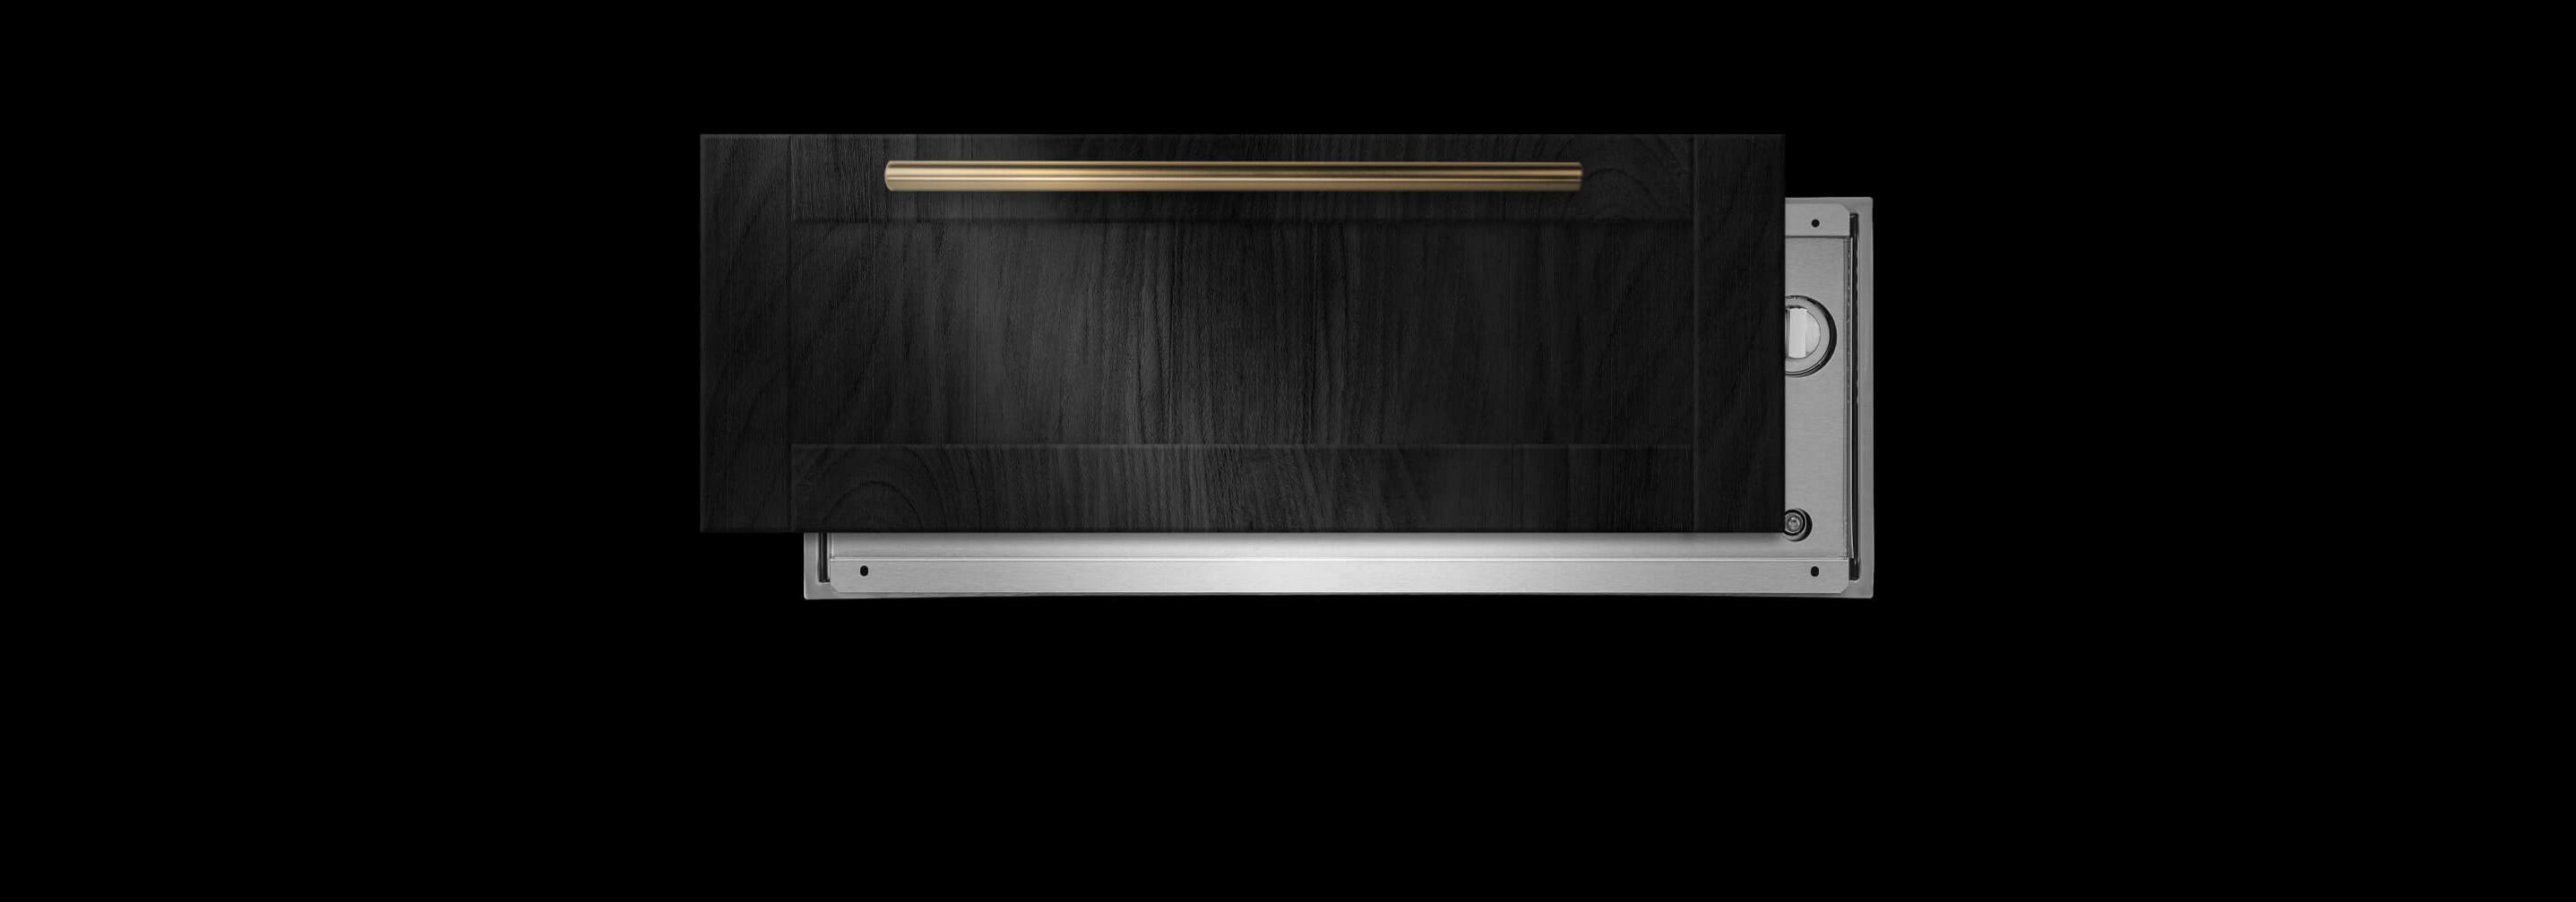 A JennAir® warming drawer with an offset black wooden panel.